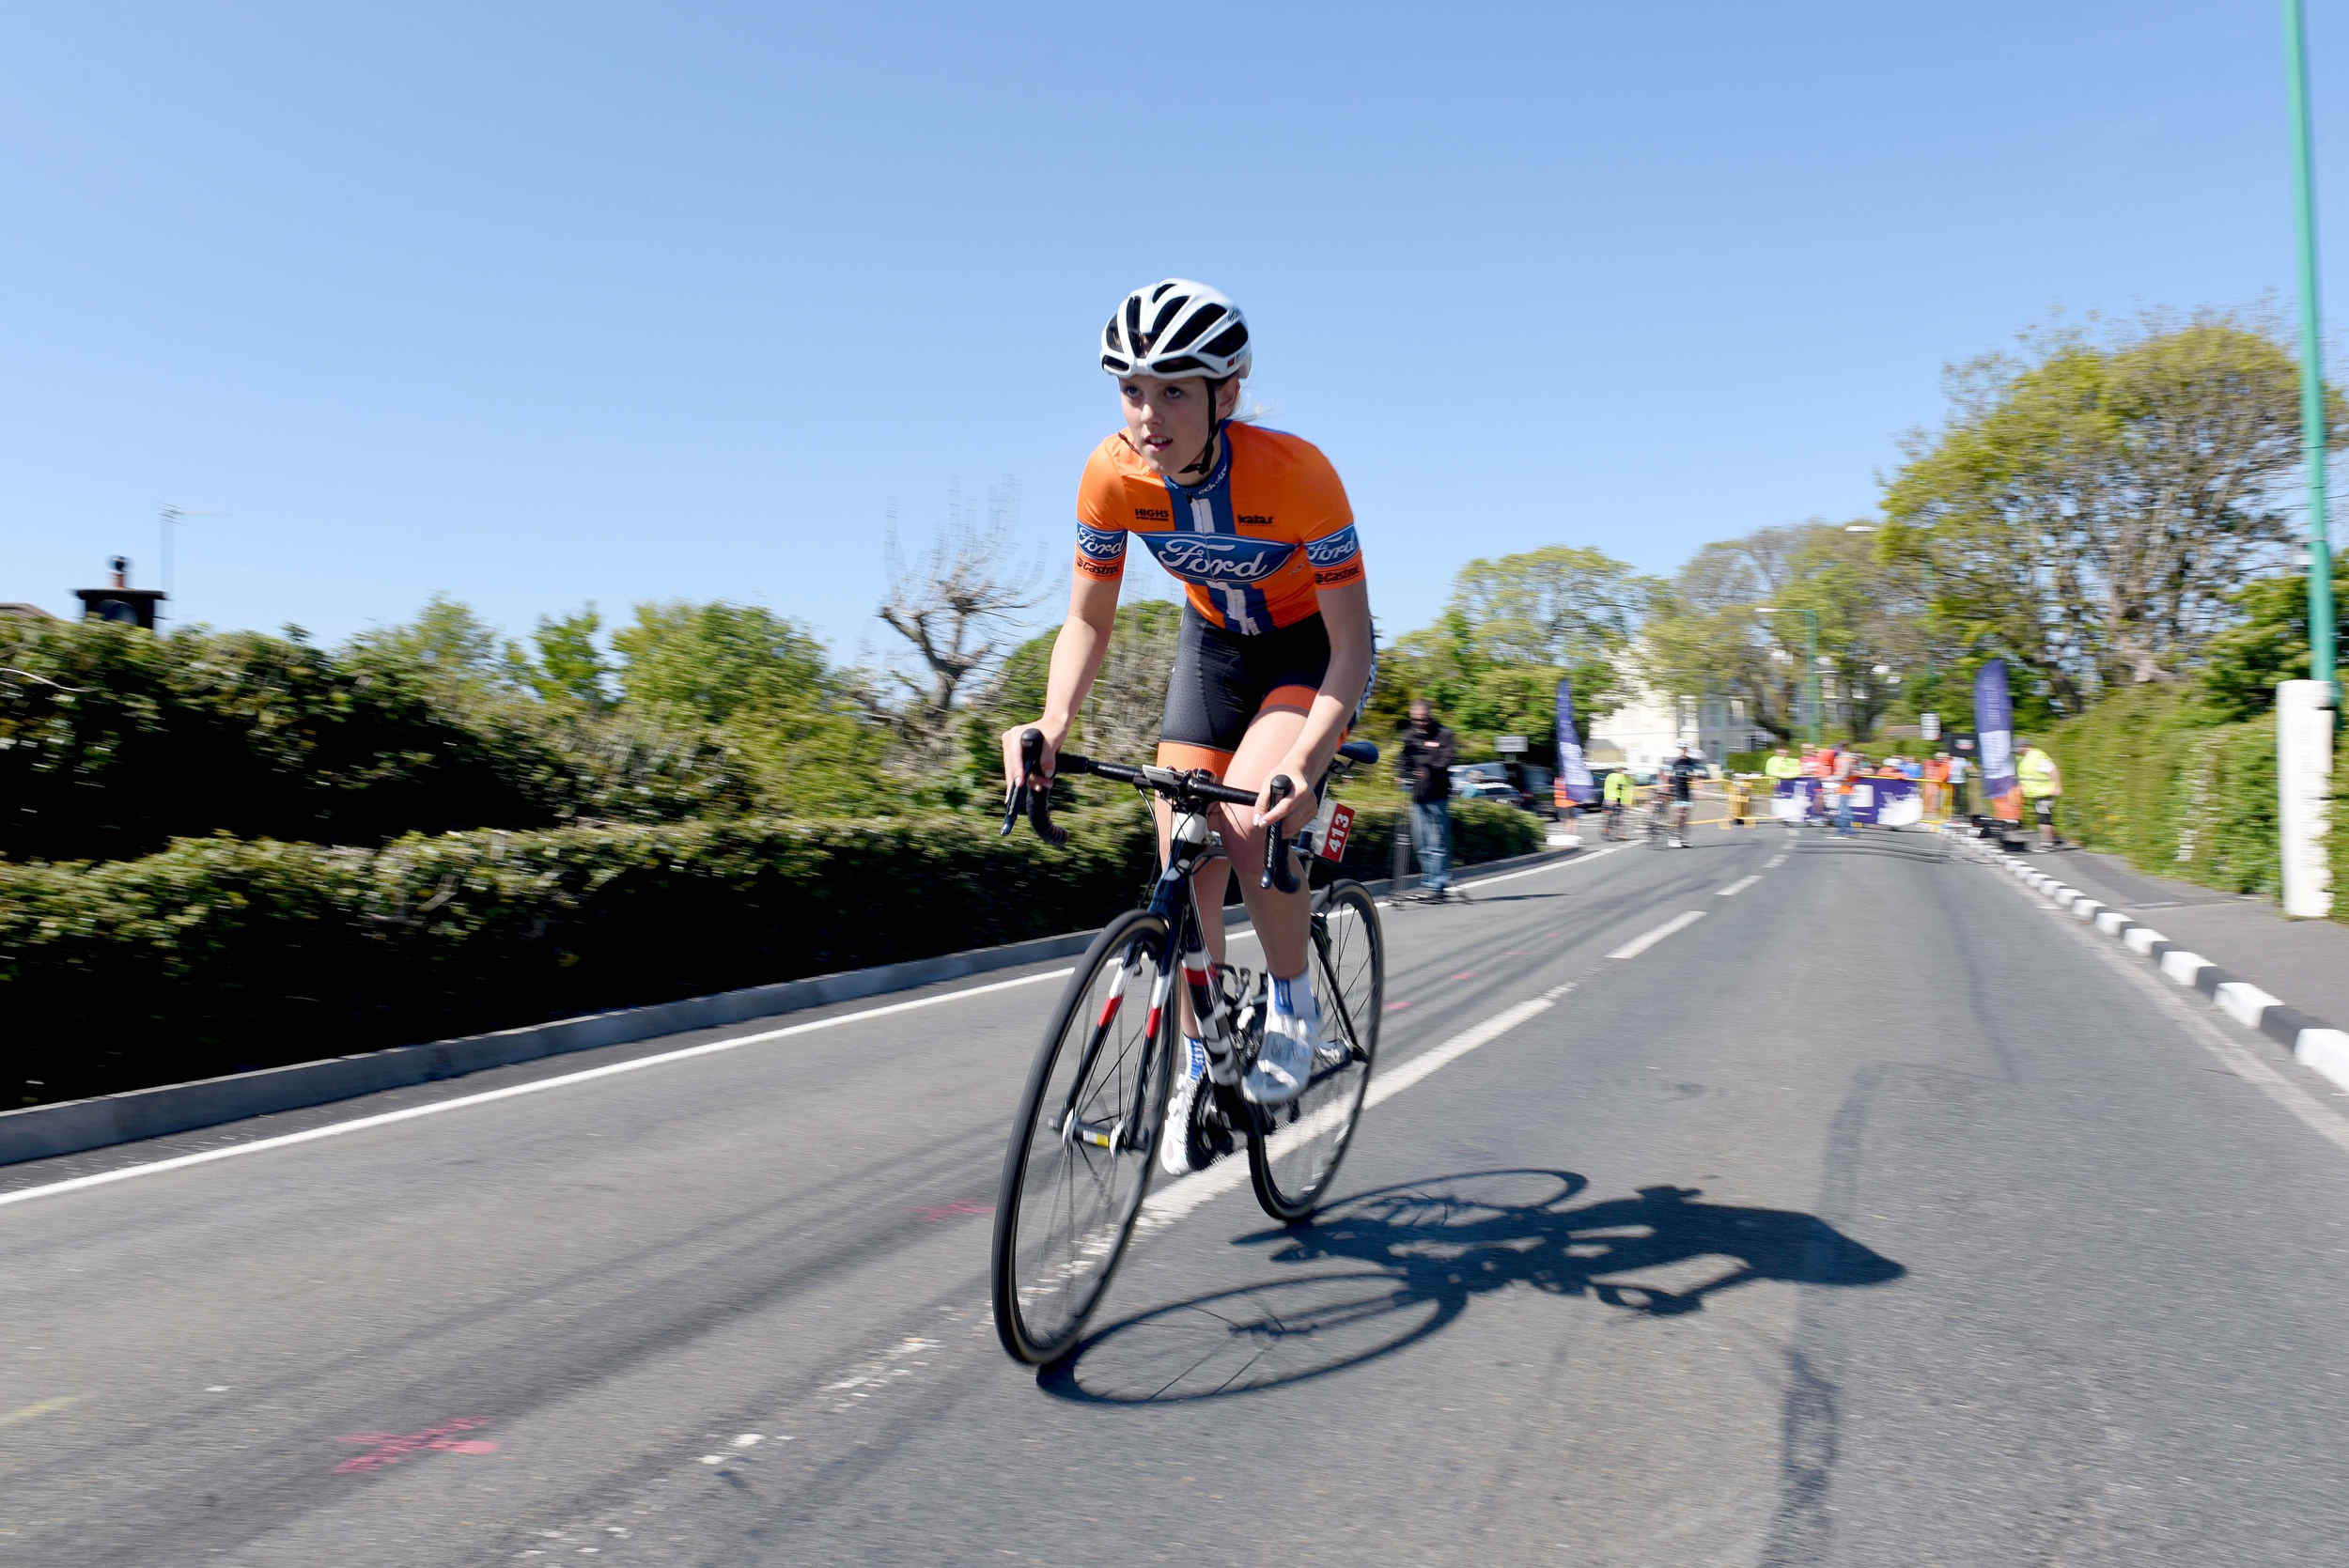 Saturday of Isle of Man Cyclefest 2016, based at Milntown in Ramsey - the Storm the Tower hill climb time trial from Ramsey to the Gooseneck